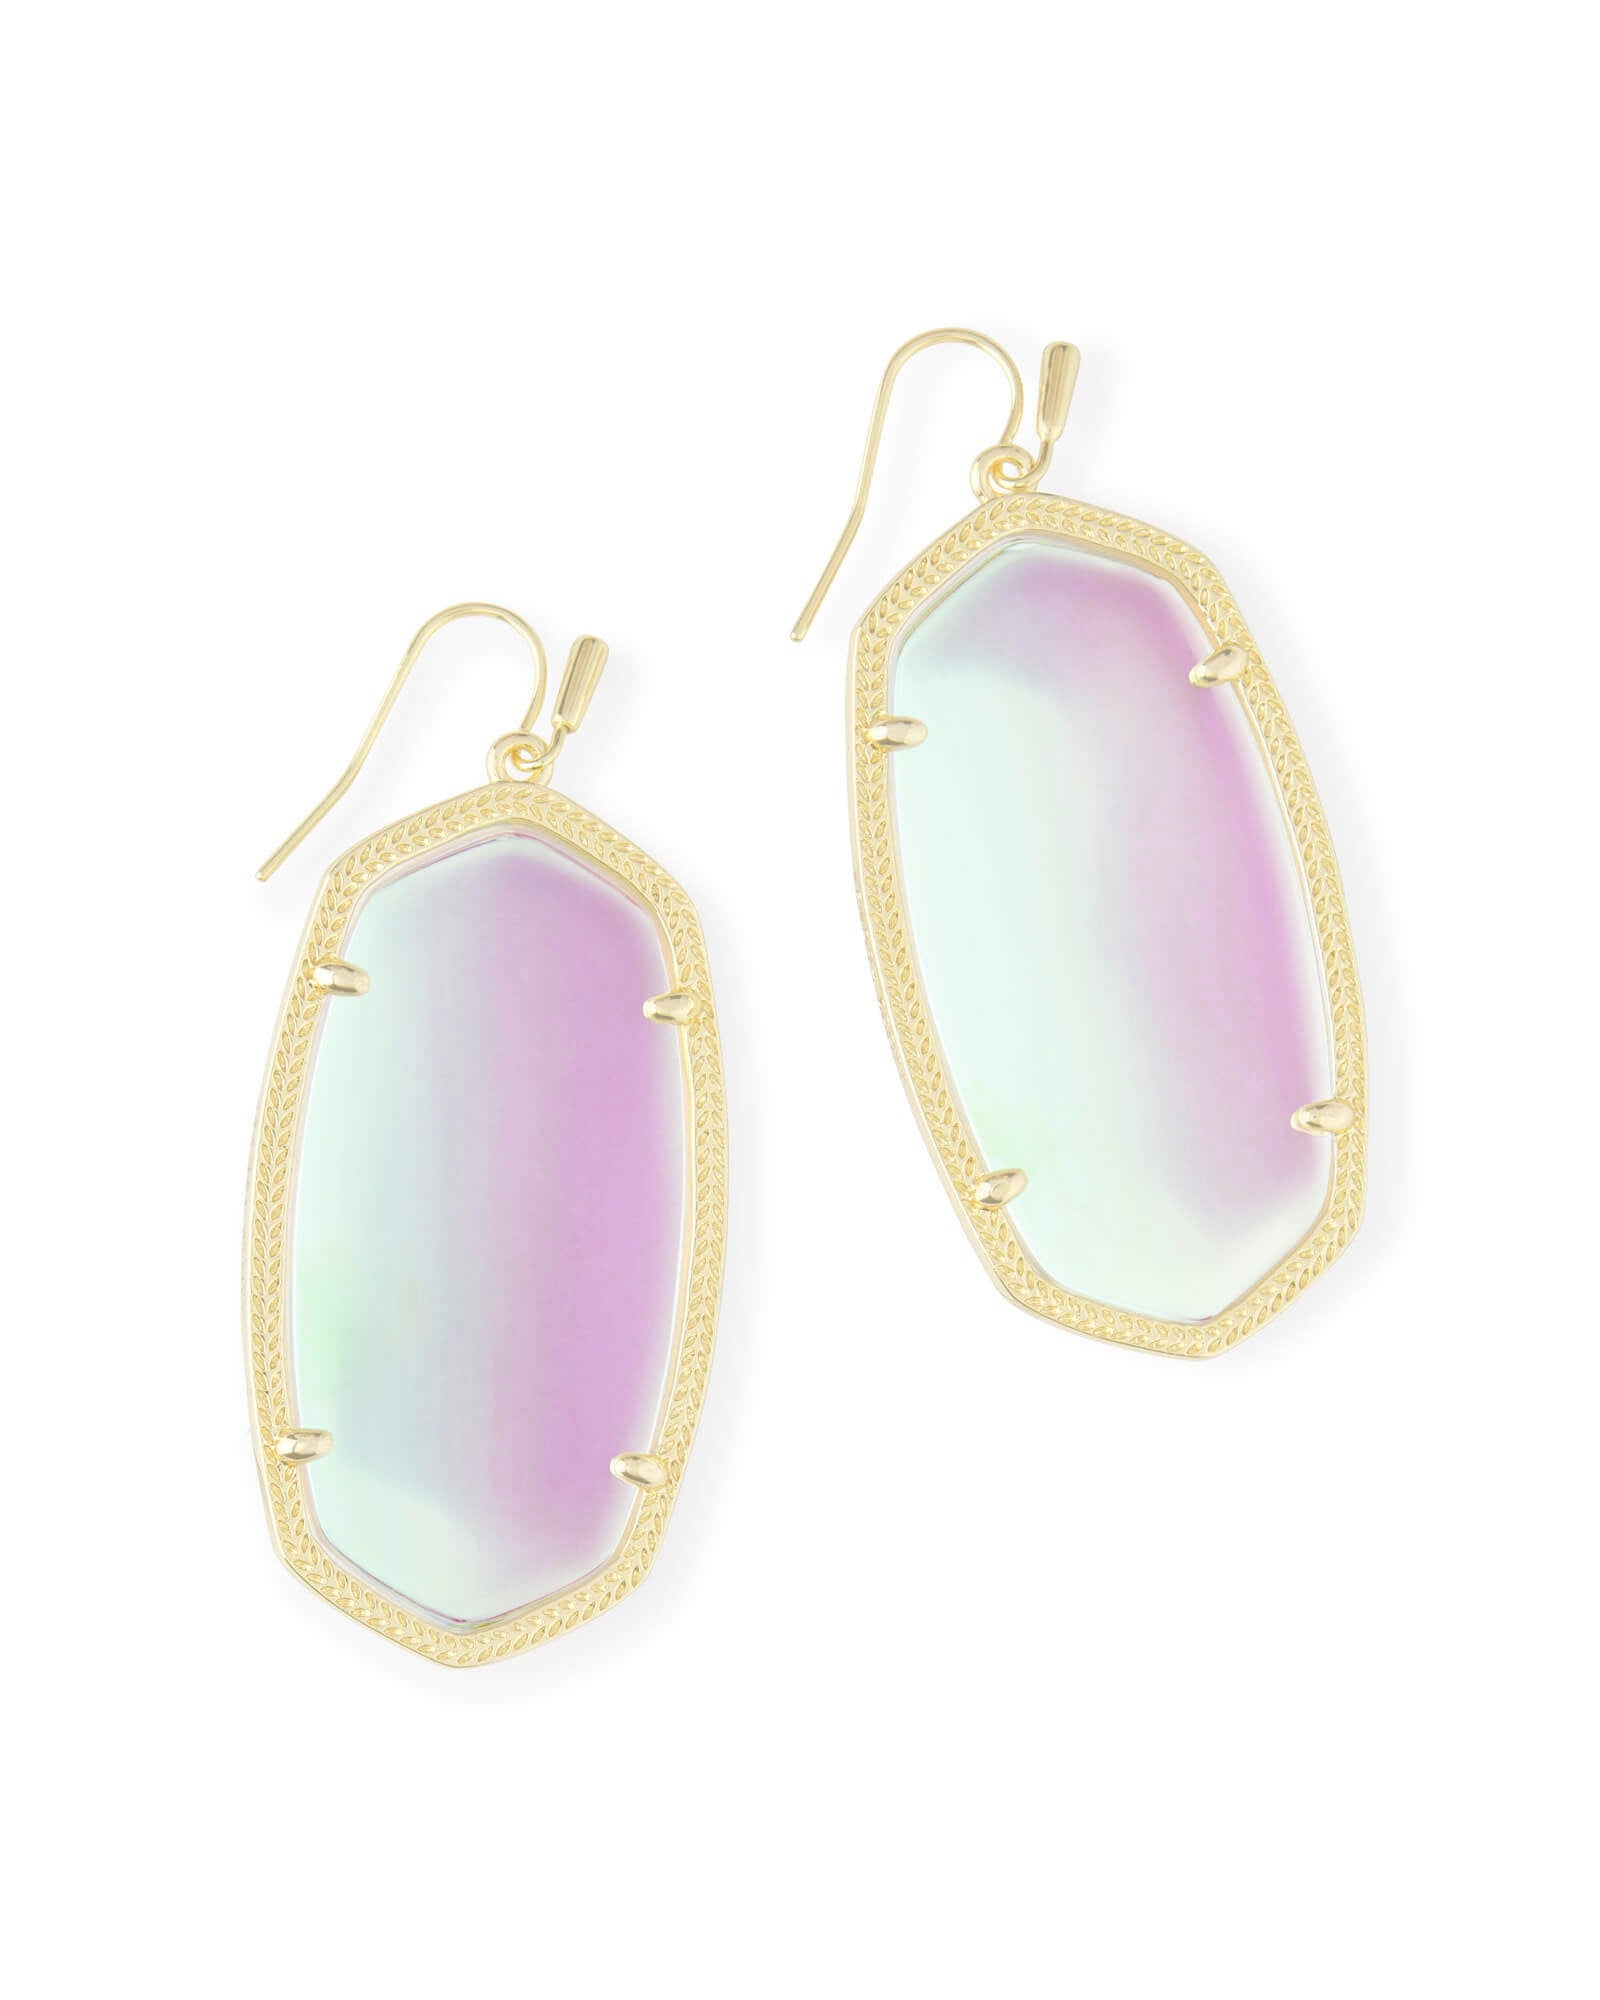 Danielle Earrings in Dichroic Glass